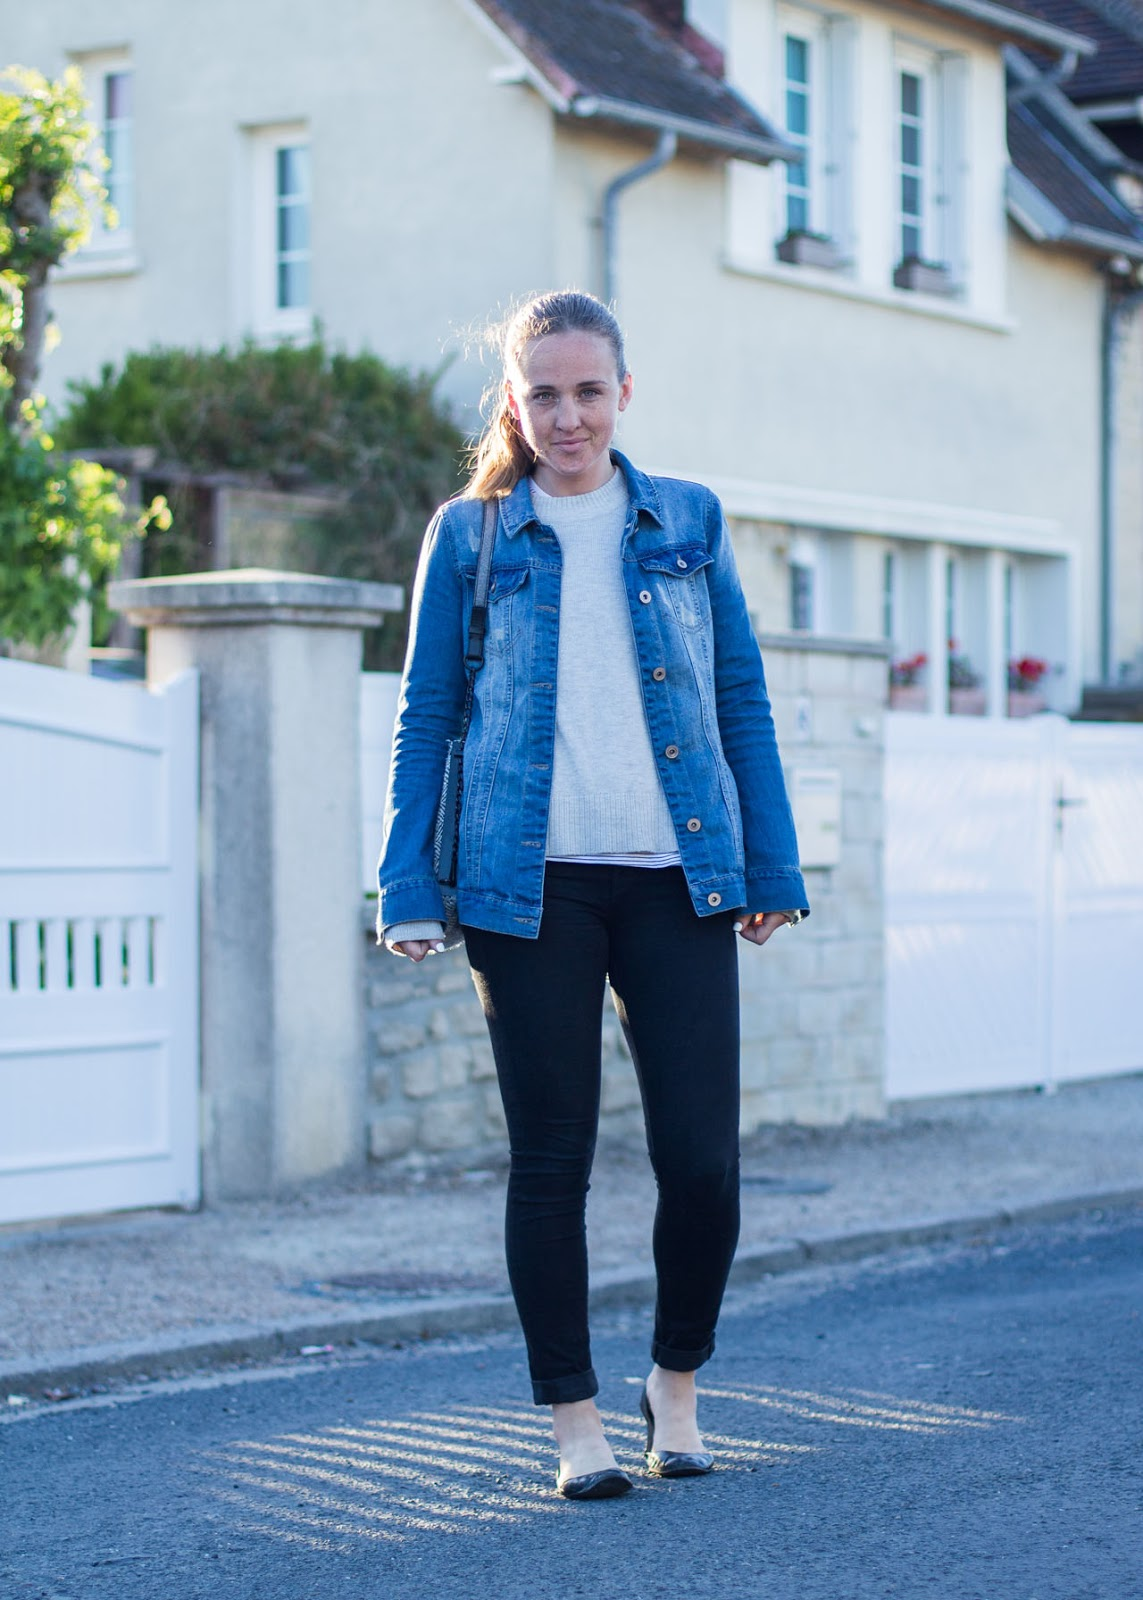 Travel Style - OOTD - Normandy - France